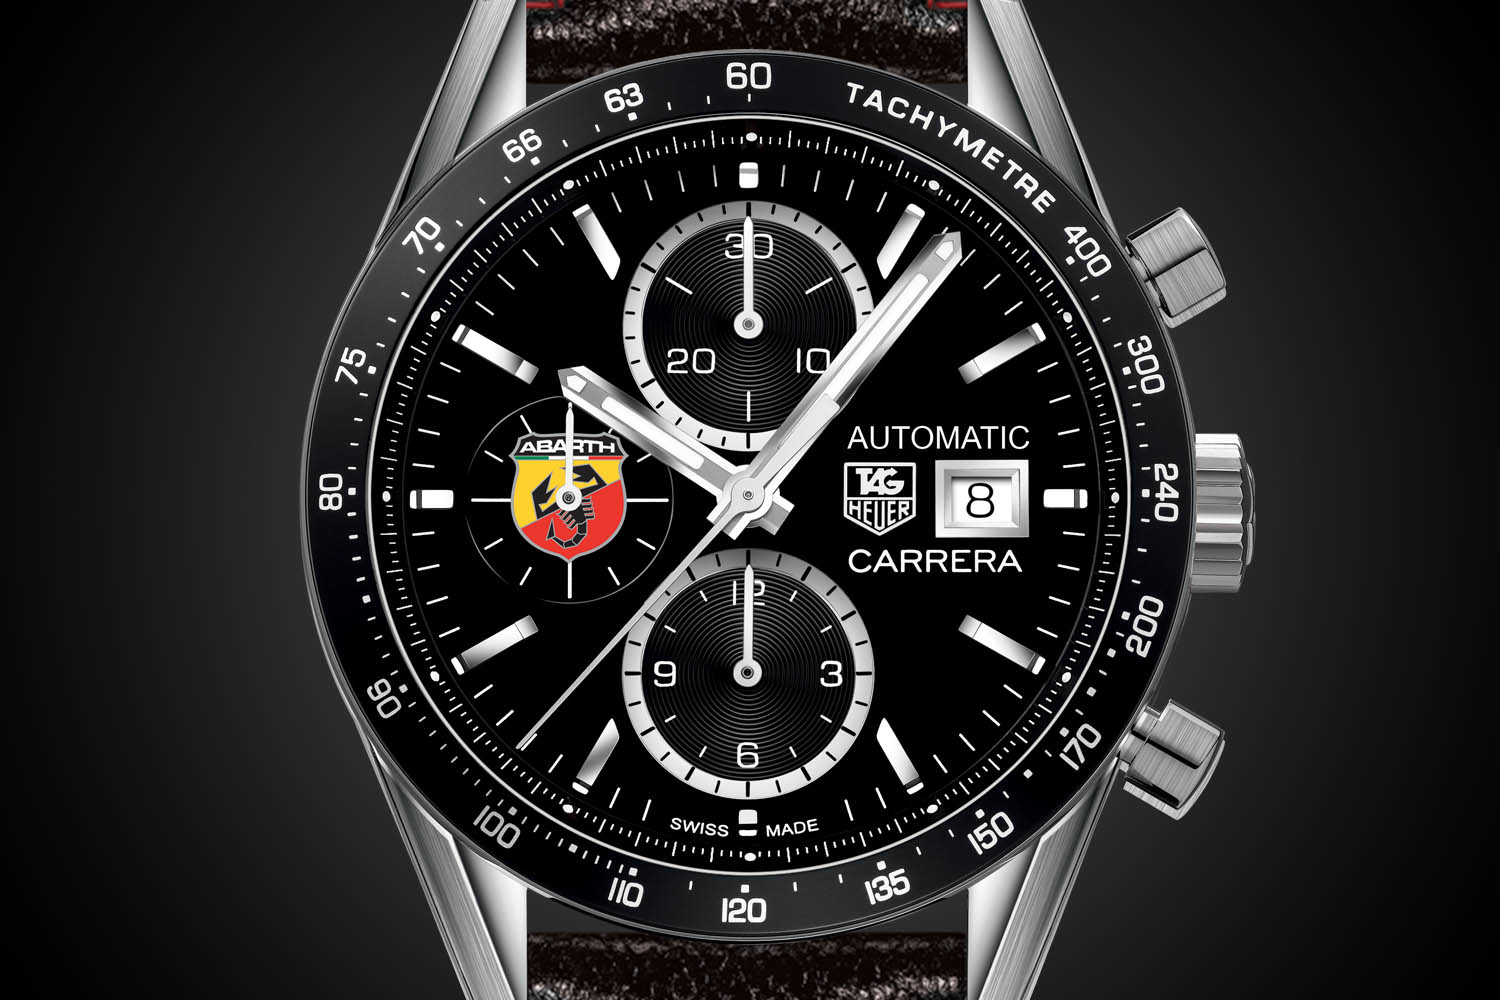 TAG Heuer Carrera Abarth 595 Competizione by TAG Heuer - 2